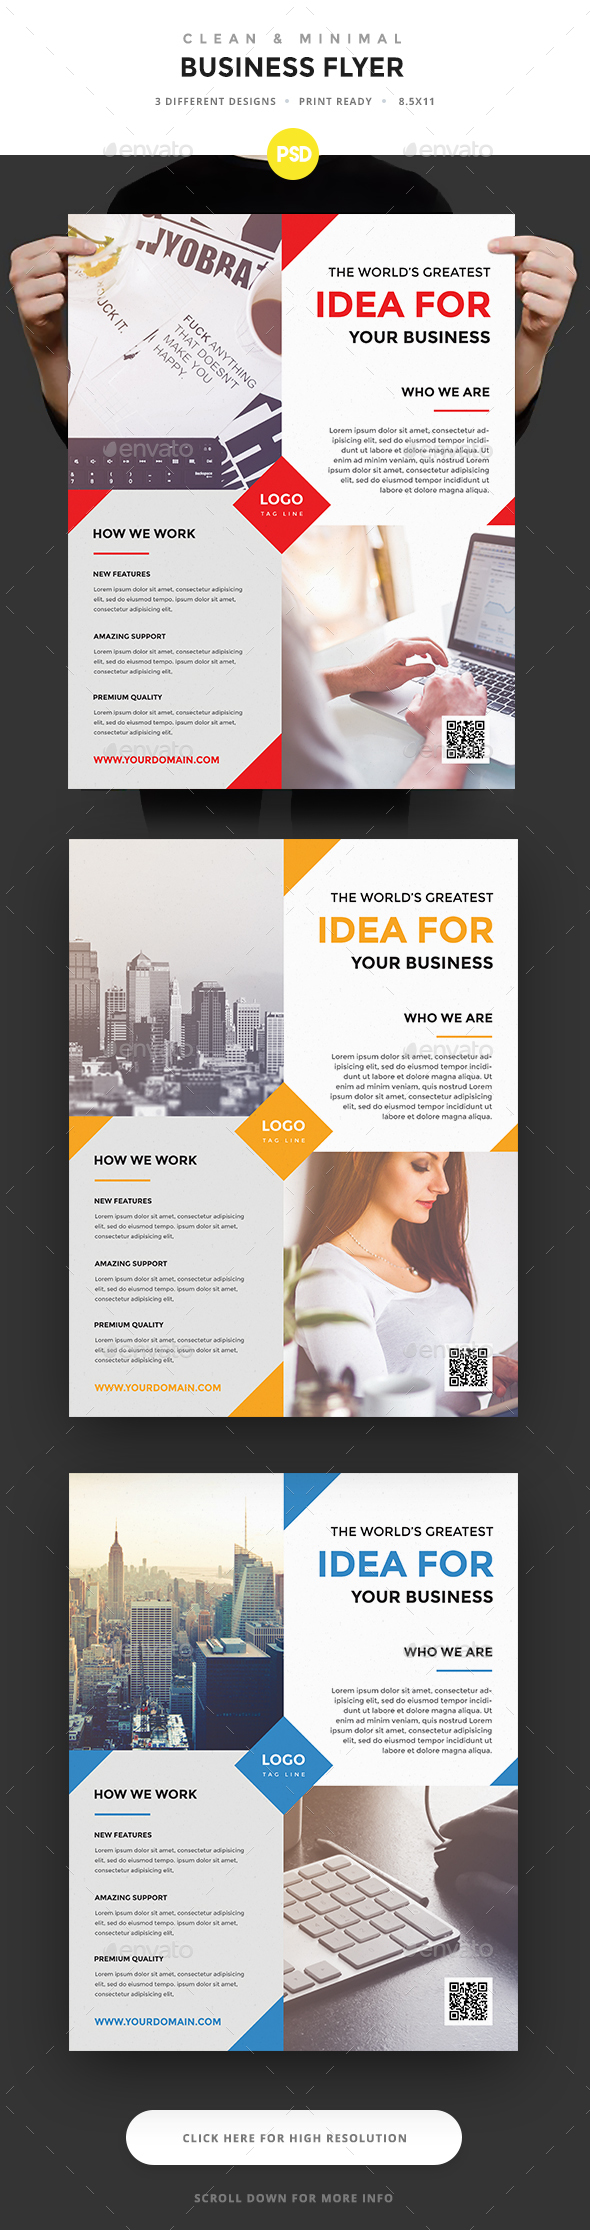 Minimal Business Flyer - Corporate Flyers